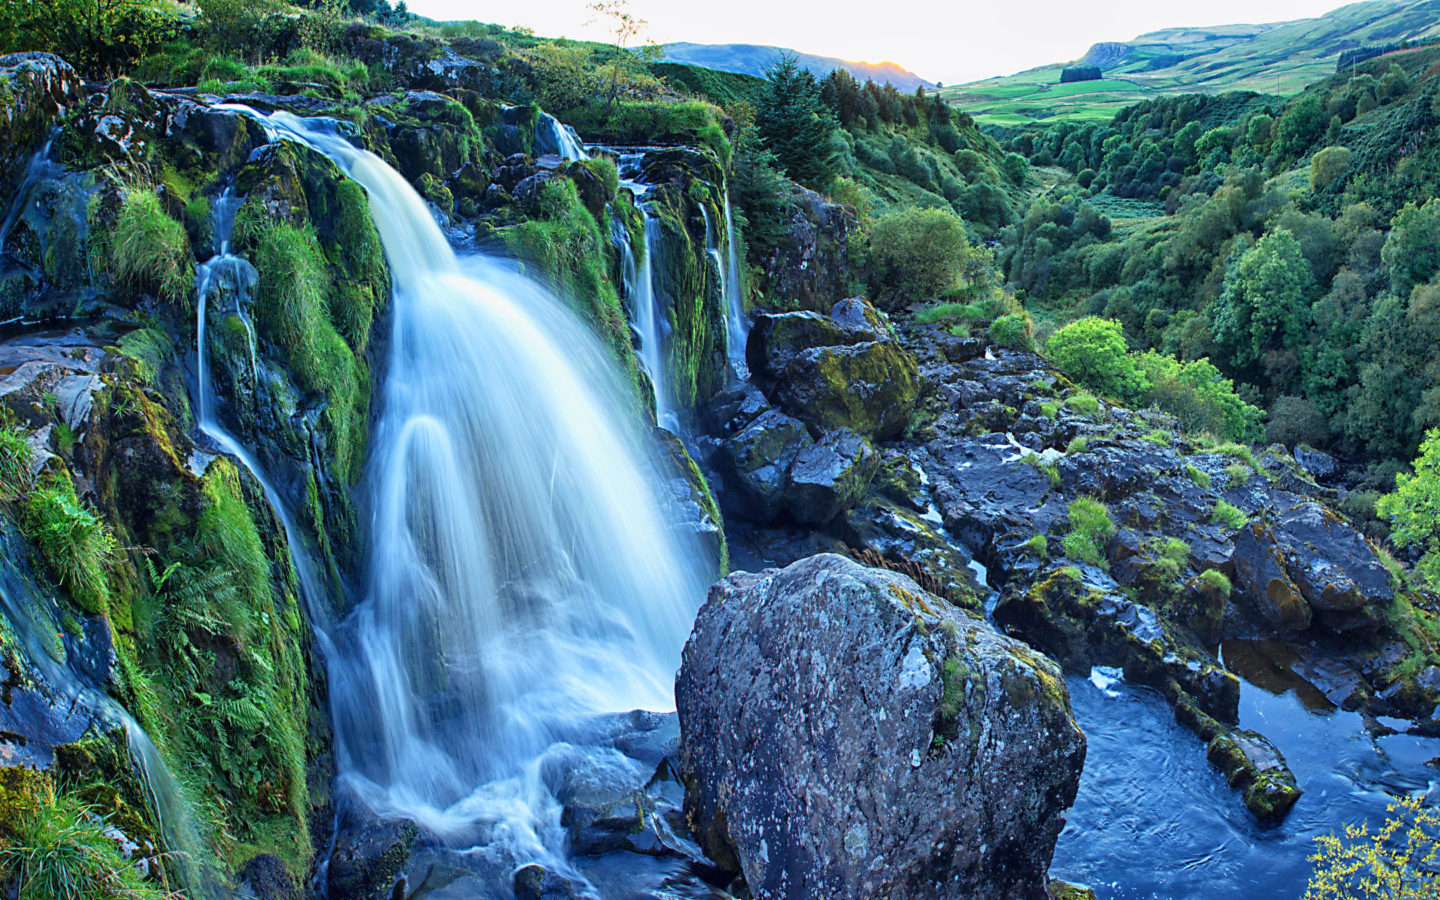 Fall Autumn Hd Wallpaper 1920x1080 Free Loup Of Fintry Is A Waterfall On The River Endrick East Of